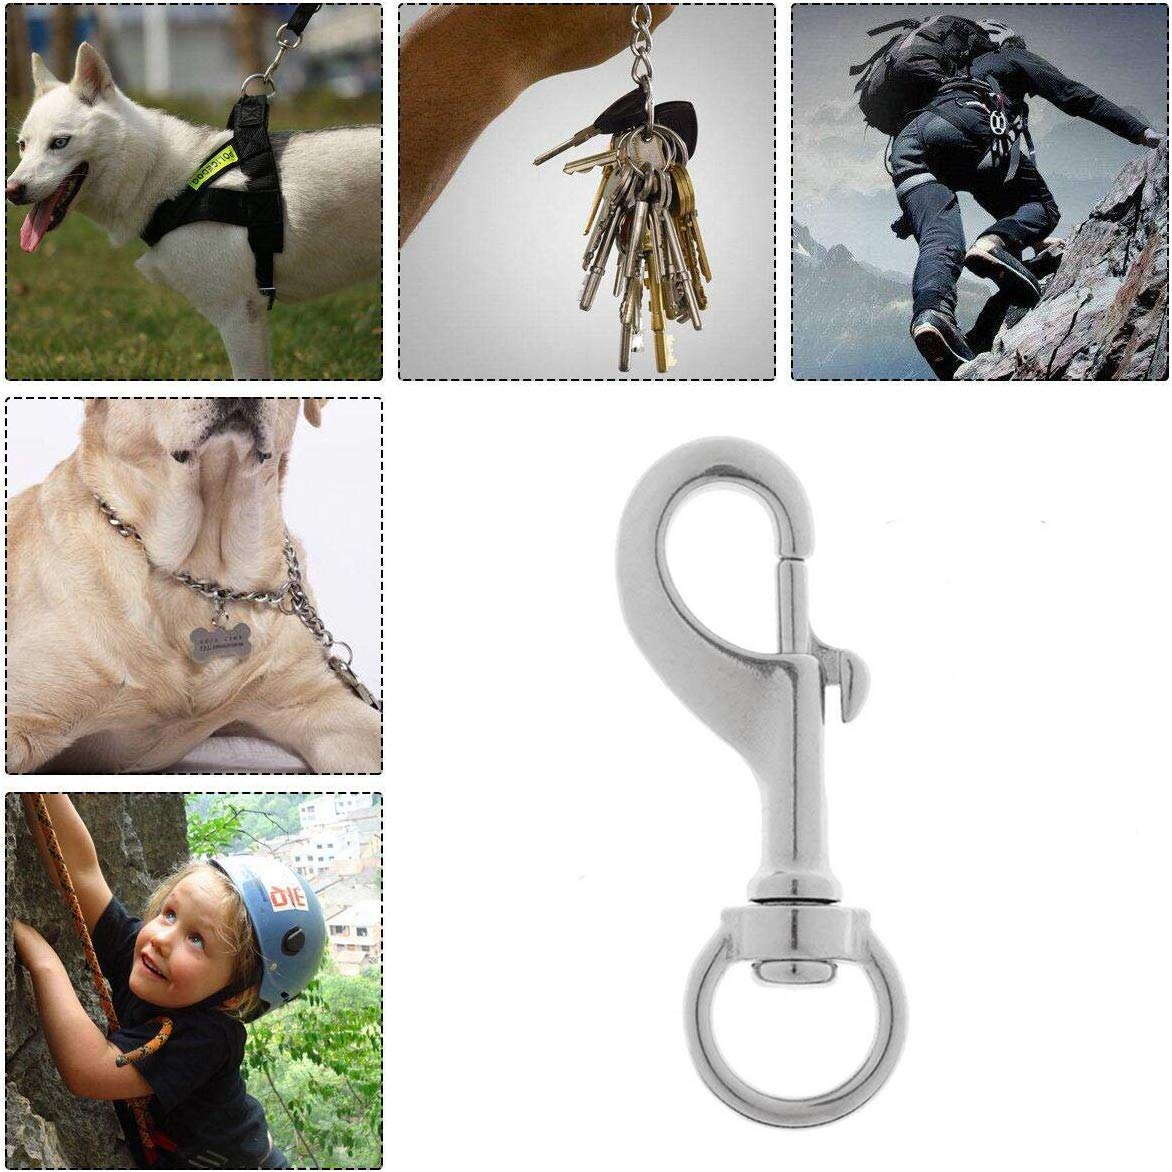 Flag Poles Pet Leashes 316 Stainless Steel Swivel Eye Lobster Clasp for Key-Chains Scuba Bag Straps Horse Leads Gate Latches Yundxi Heavy Duty Bolt Snap Clip Hook